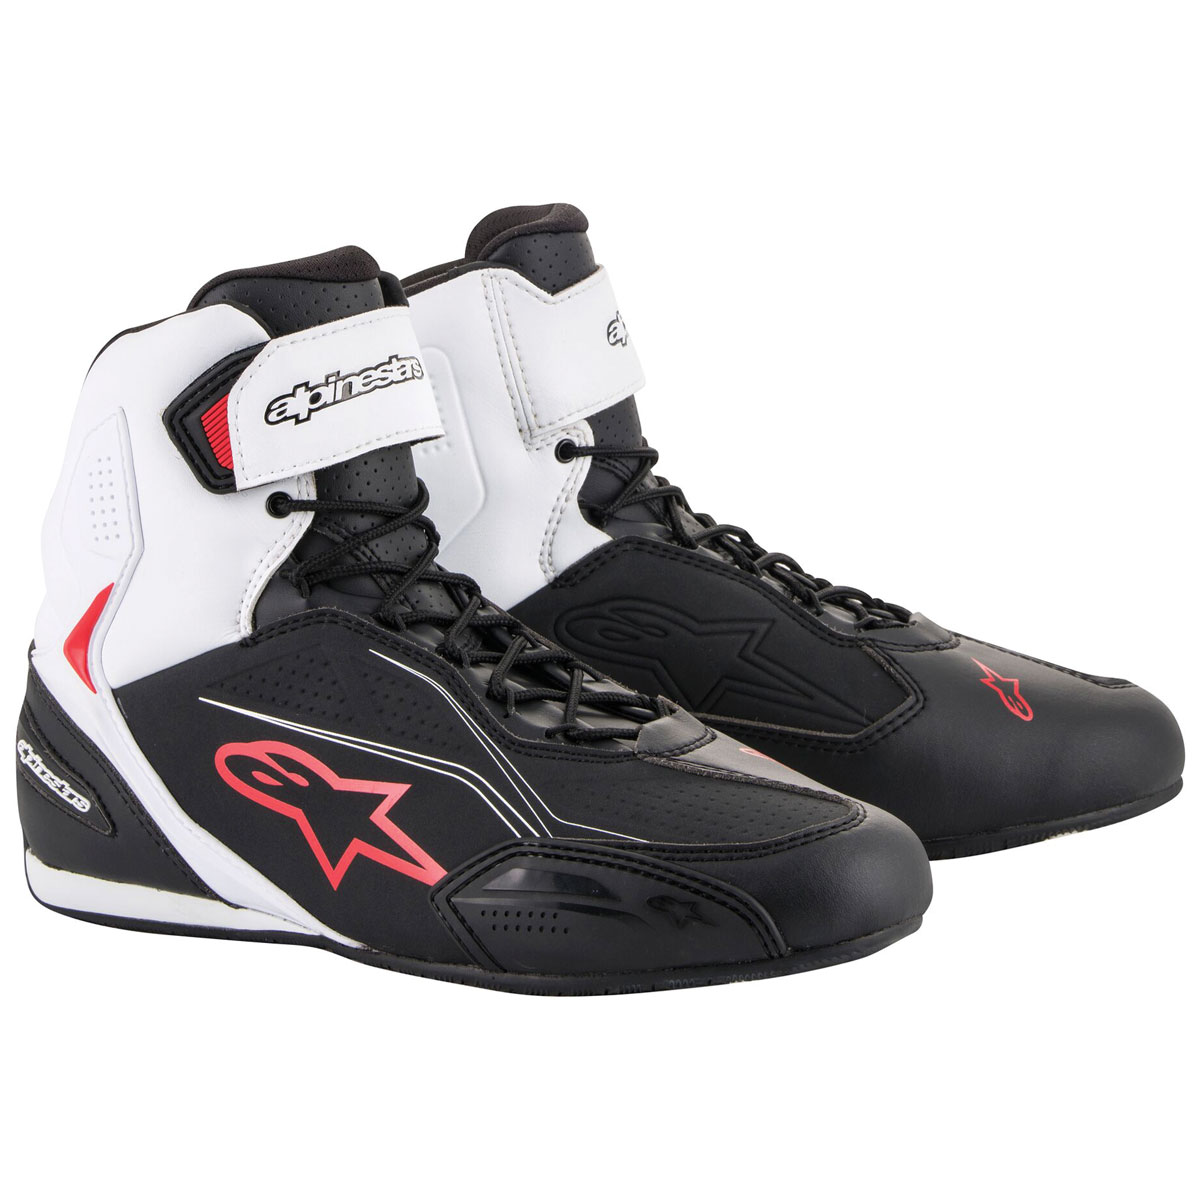 Alpinestars Men's Faster-3 Black/White/Red Shoes